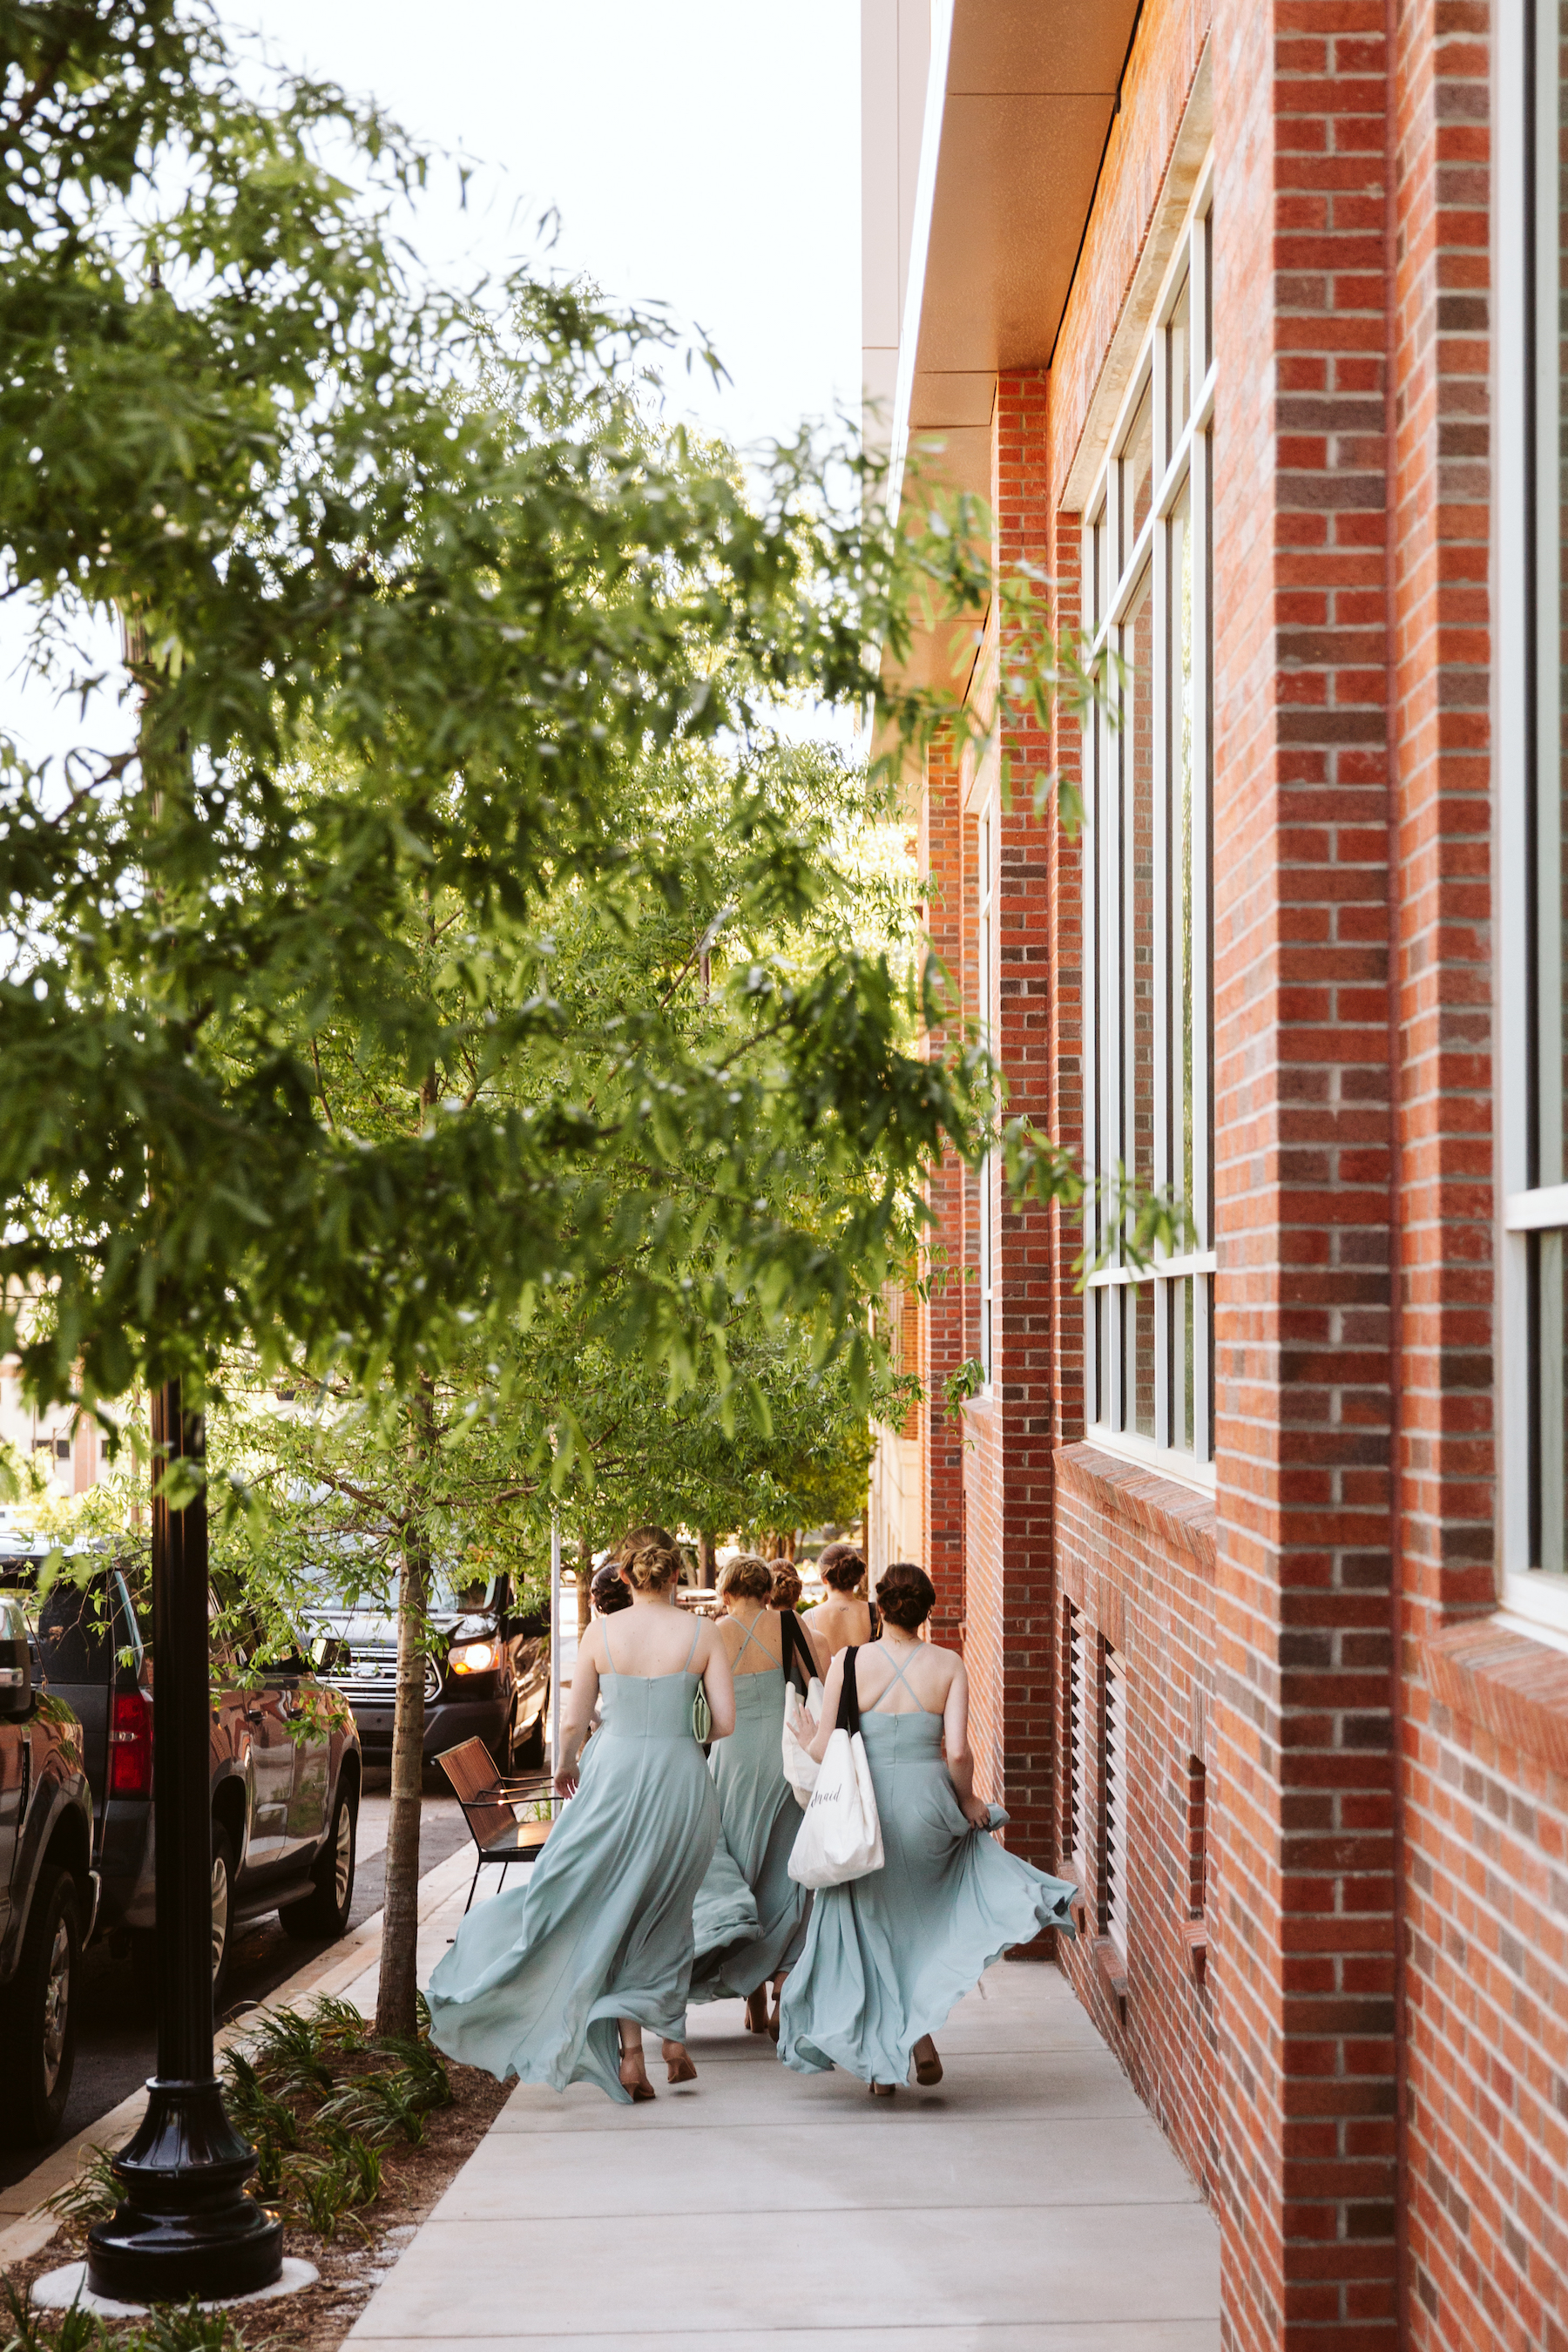 Old-Cigar-Warehouse-Wedding-Greenville-SC-Photographer-603.JPG